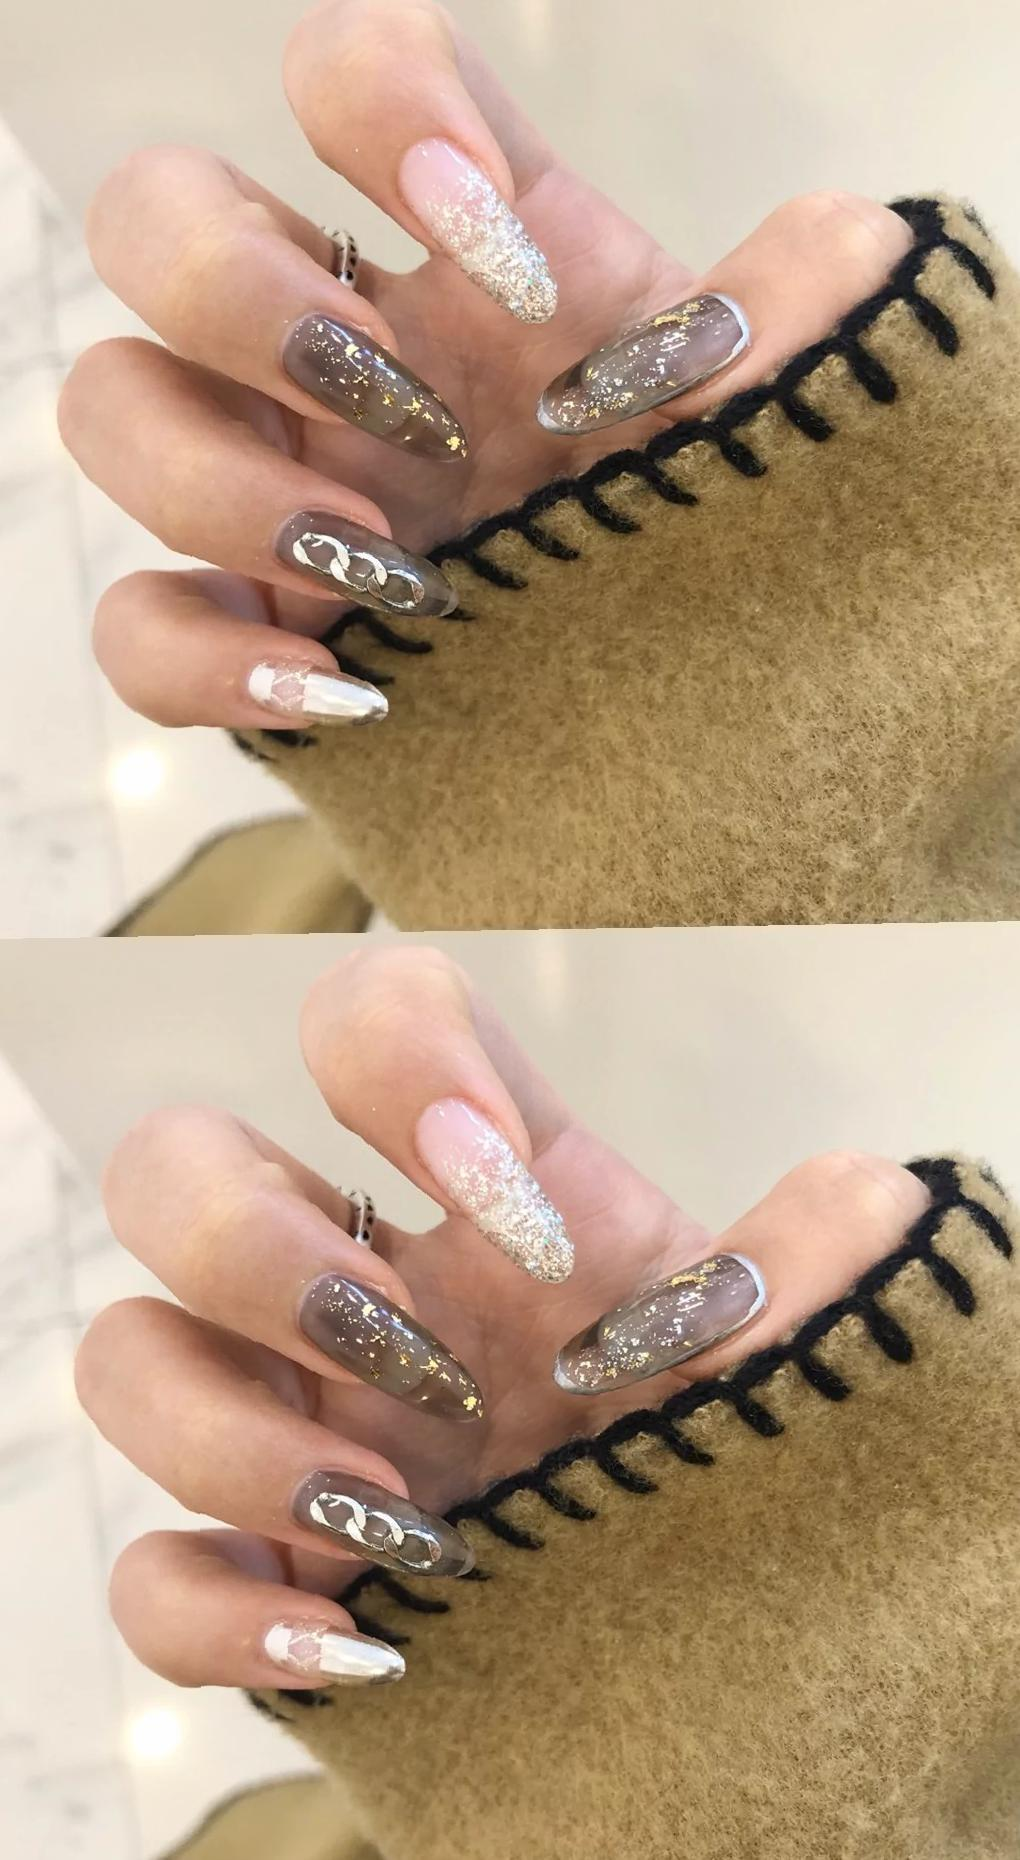 73 Awesome Long Acrylic Nail Design Trends 2020 - Naillty